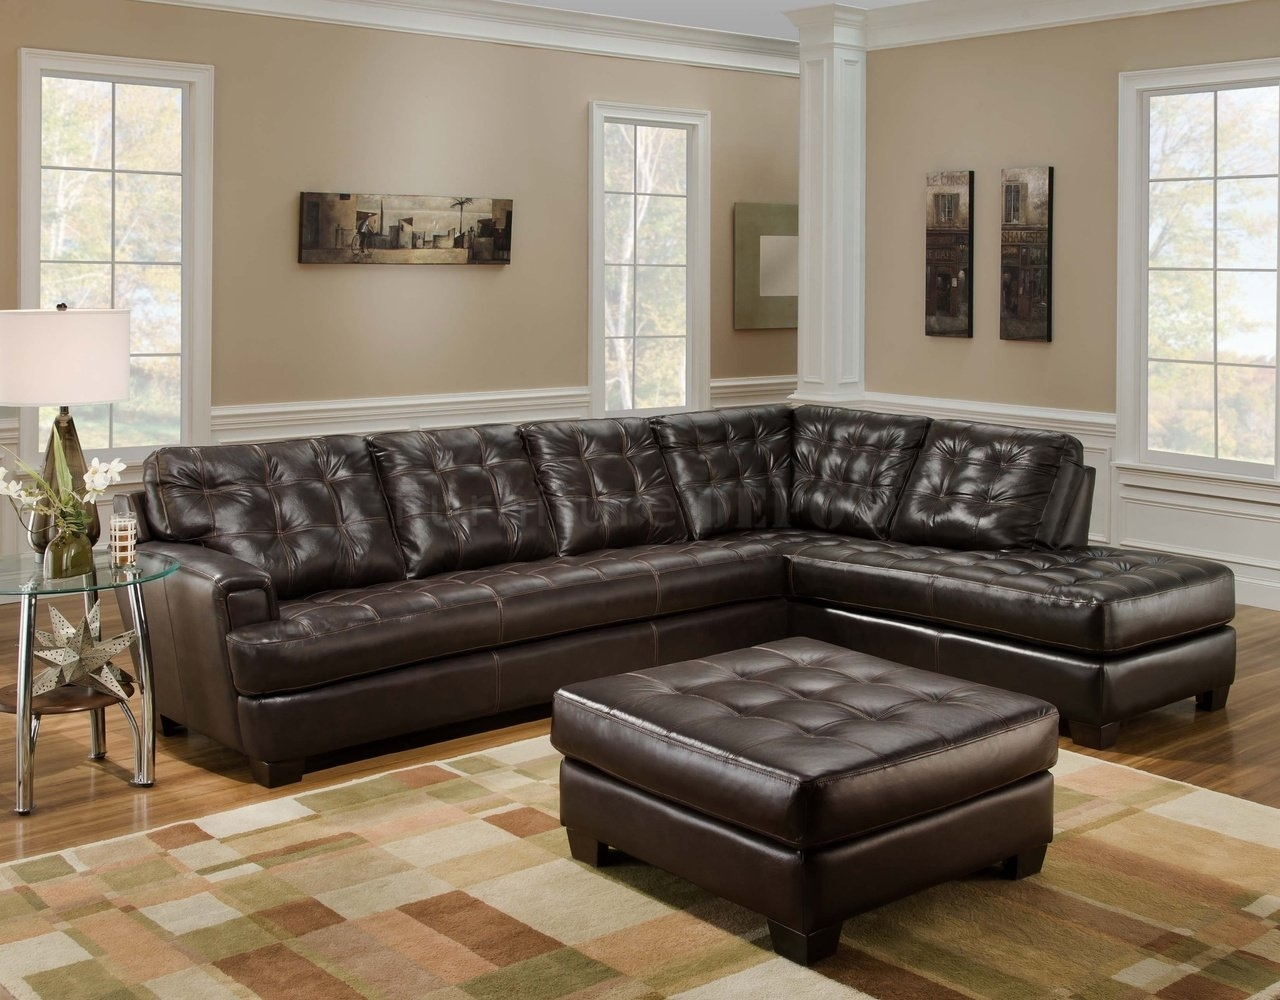 Sectional Sofa Design: Awesome Leather Sectional Sleeper Sofa In Leather Sectionals With Chaise And Ottoman (Image 9 of 10)